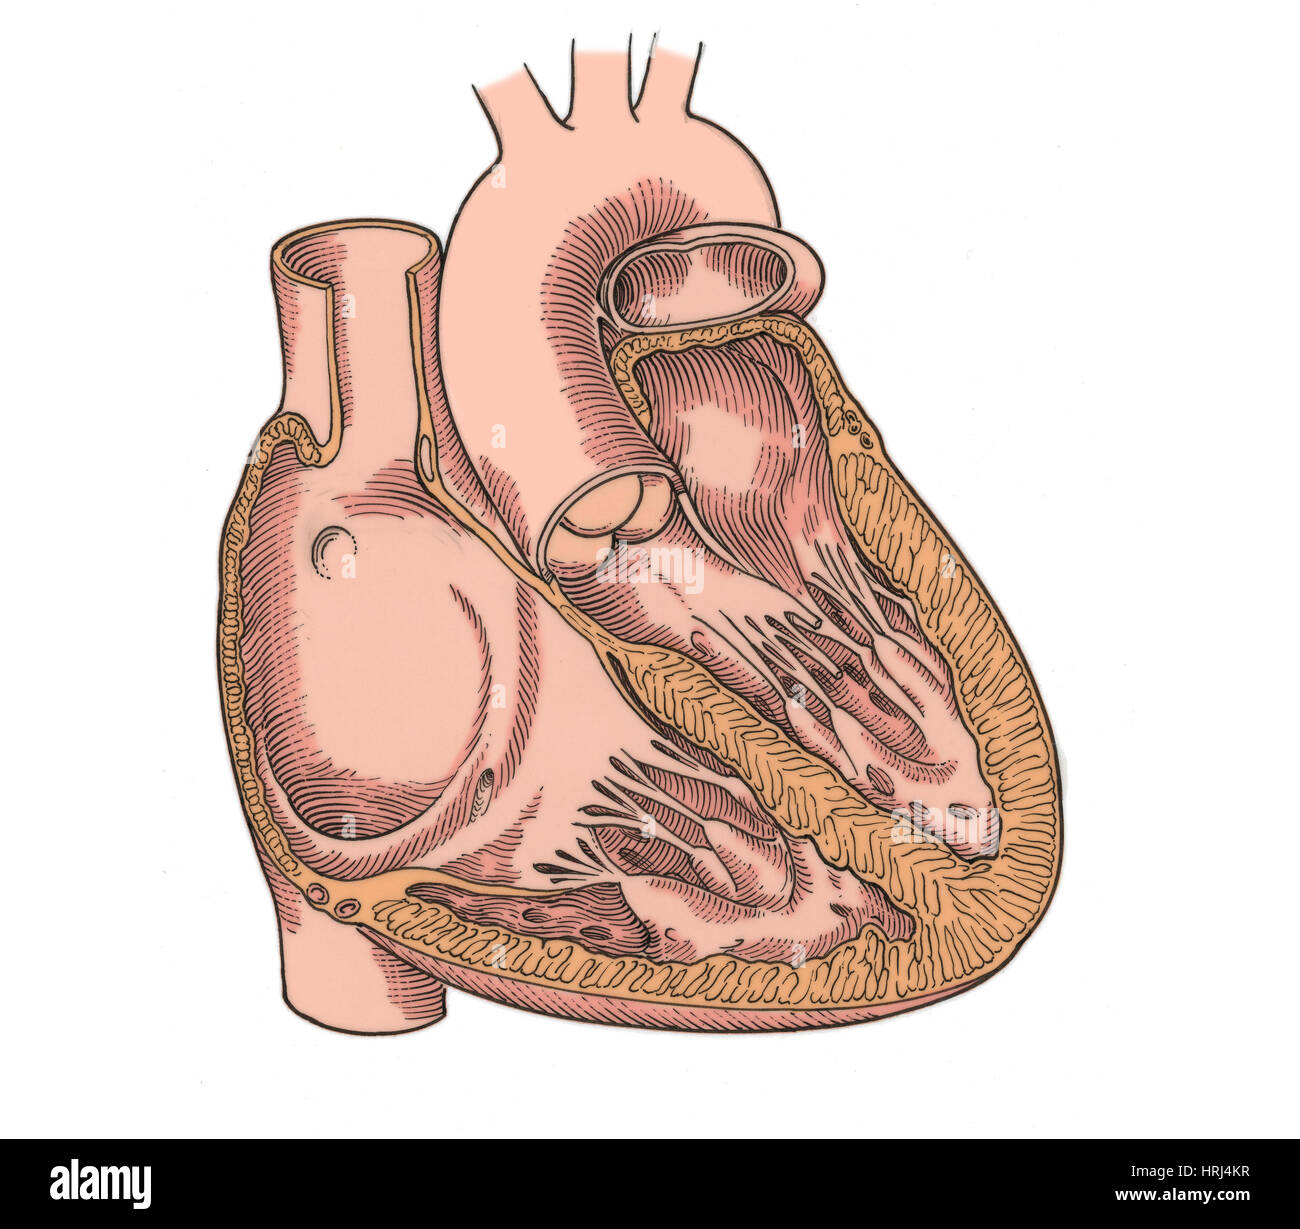 Heart Valve Superior Stockfotos & Heart Valve Superior Bilder - Alamy